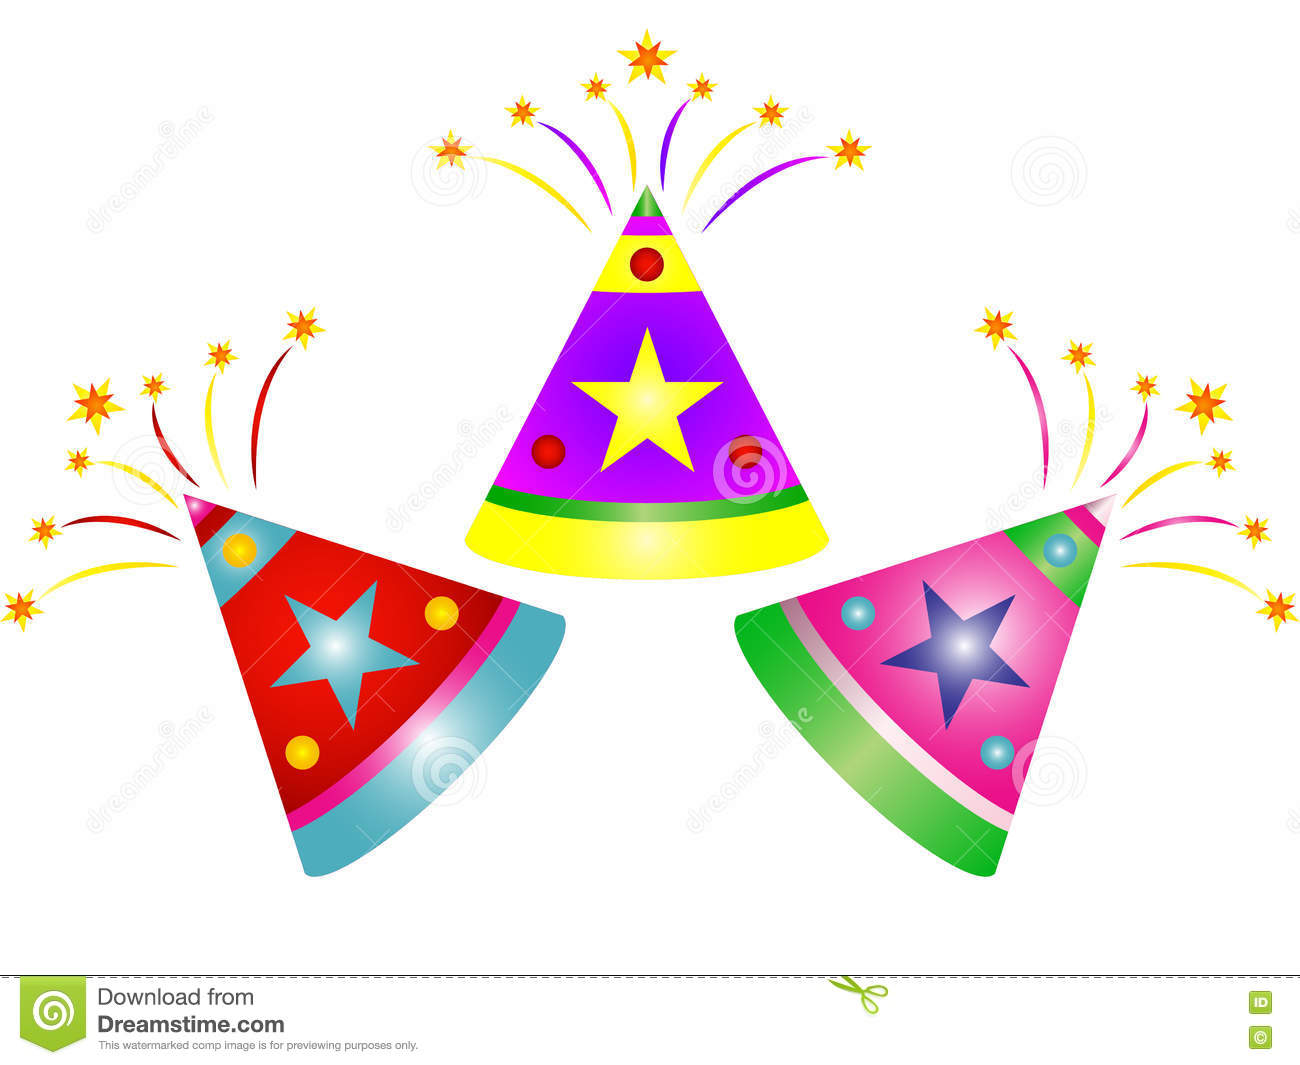 2017 clipart diwali. Crackers png station